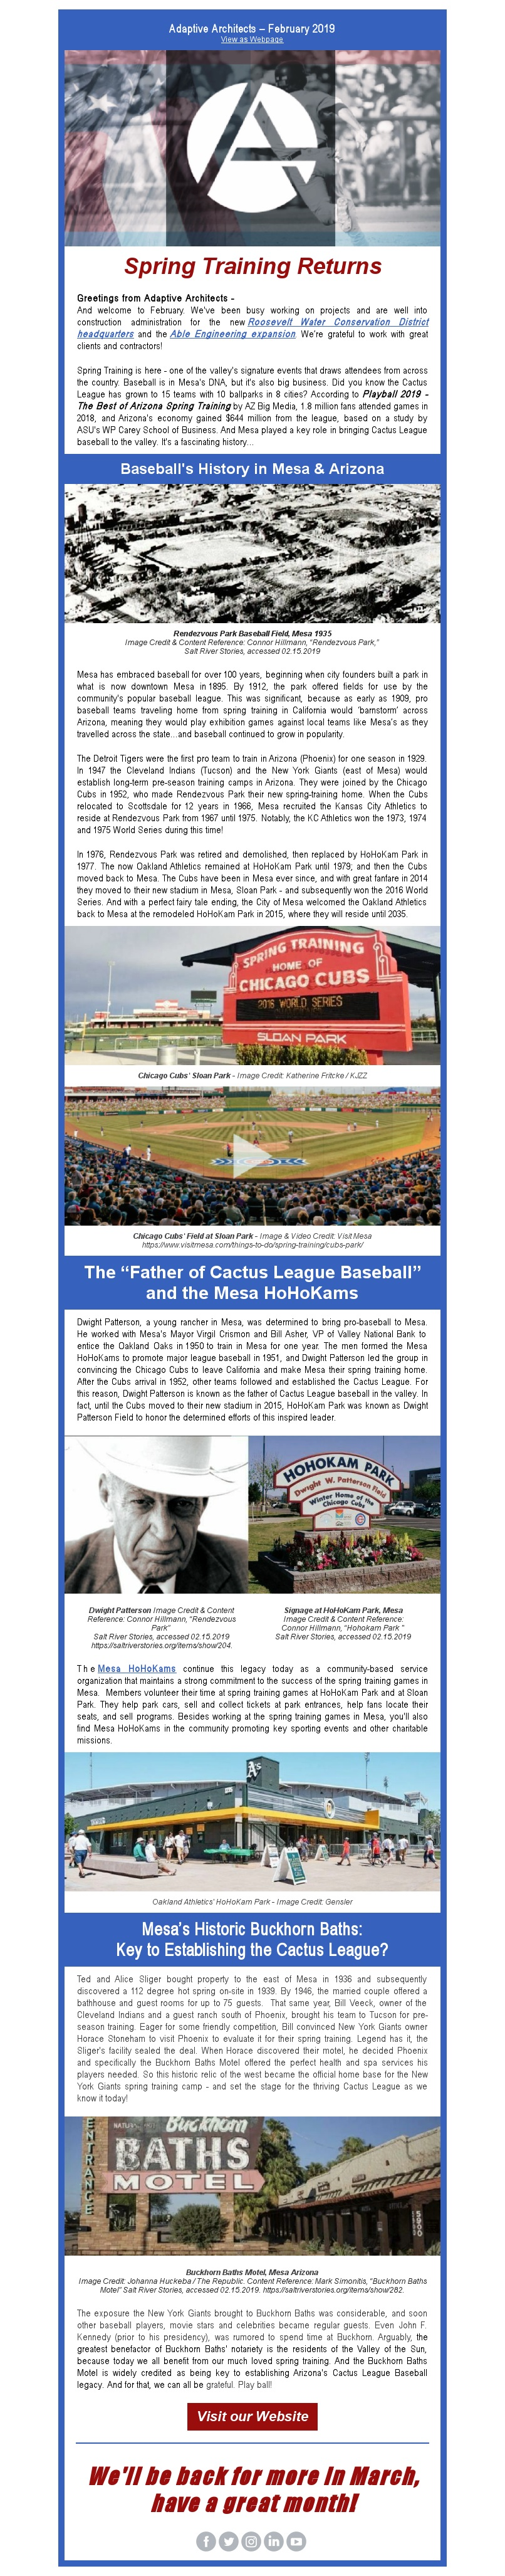 Image of Adaptive Architects Feb 2019 Newsletter - Spring Training Returns